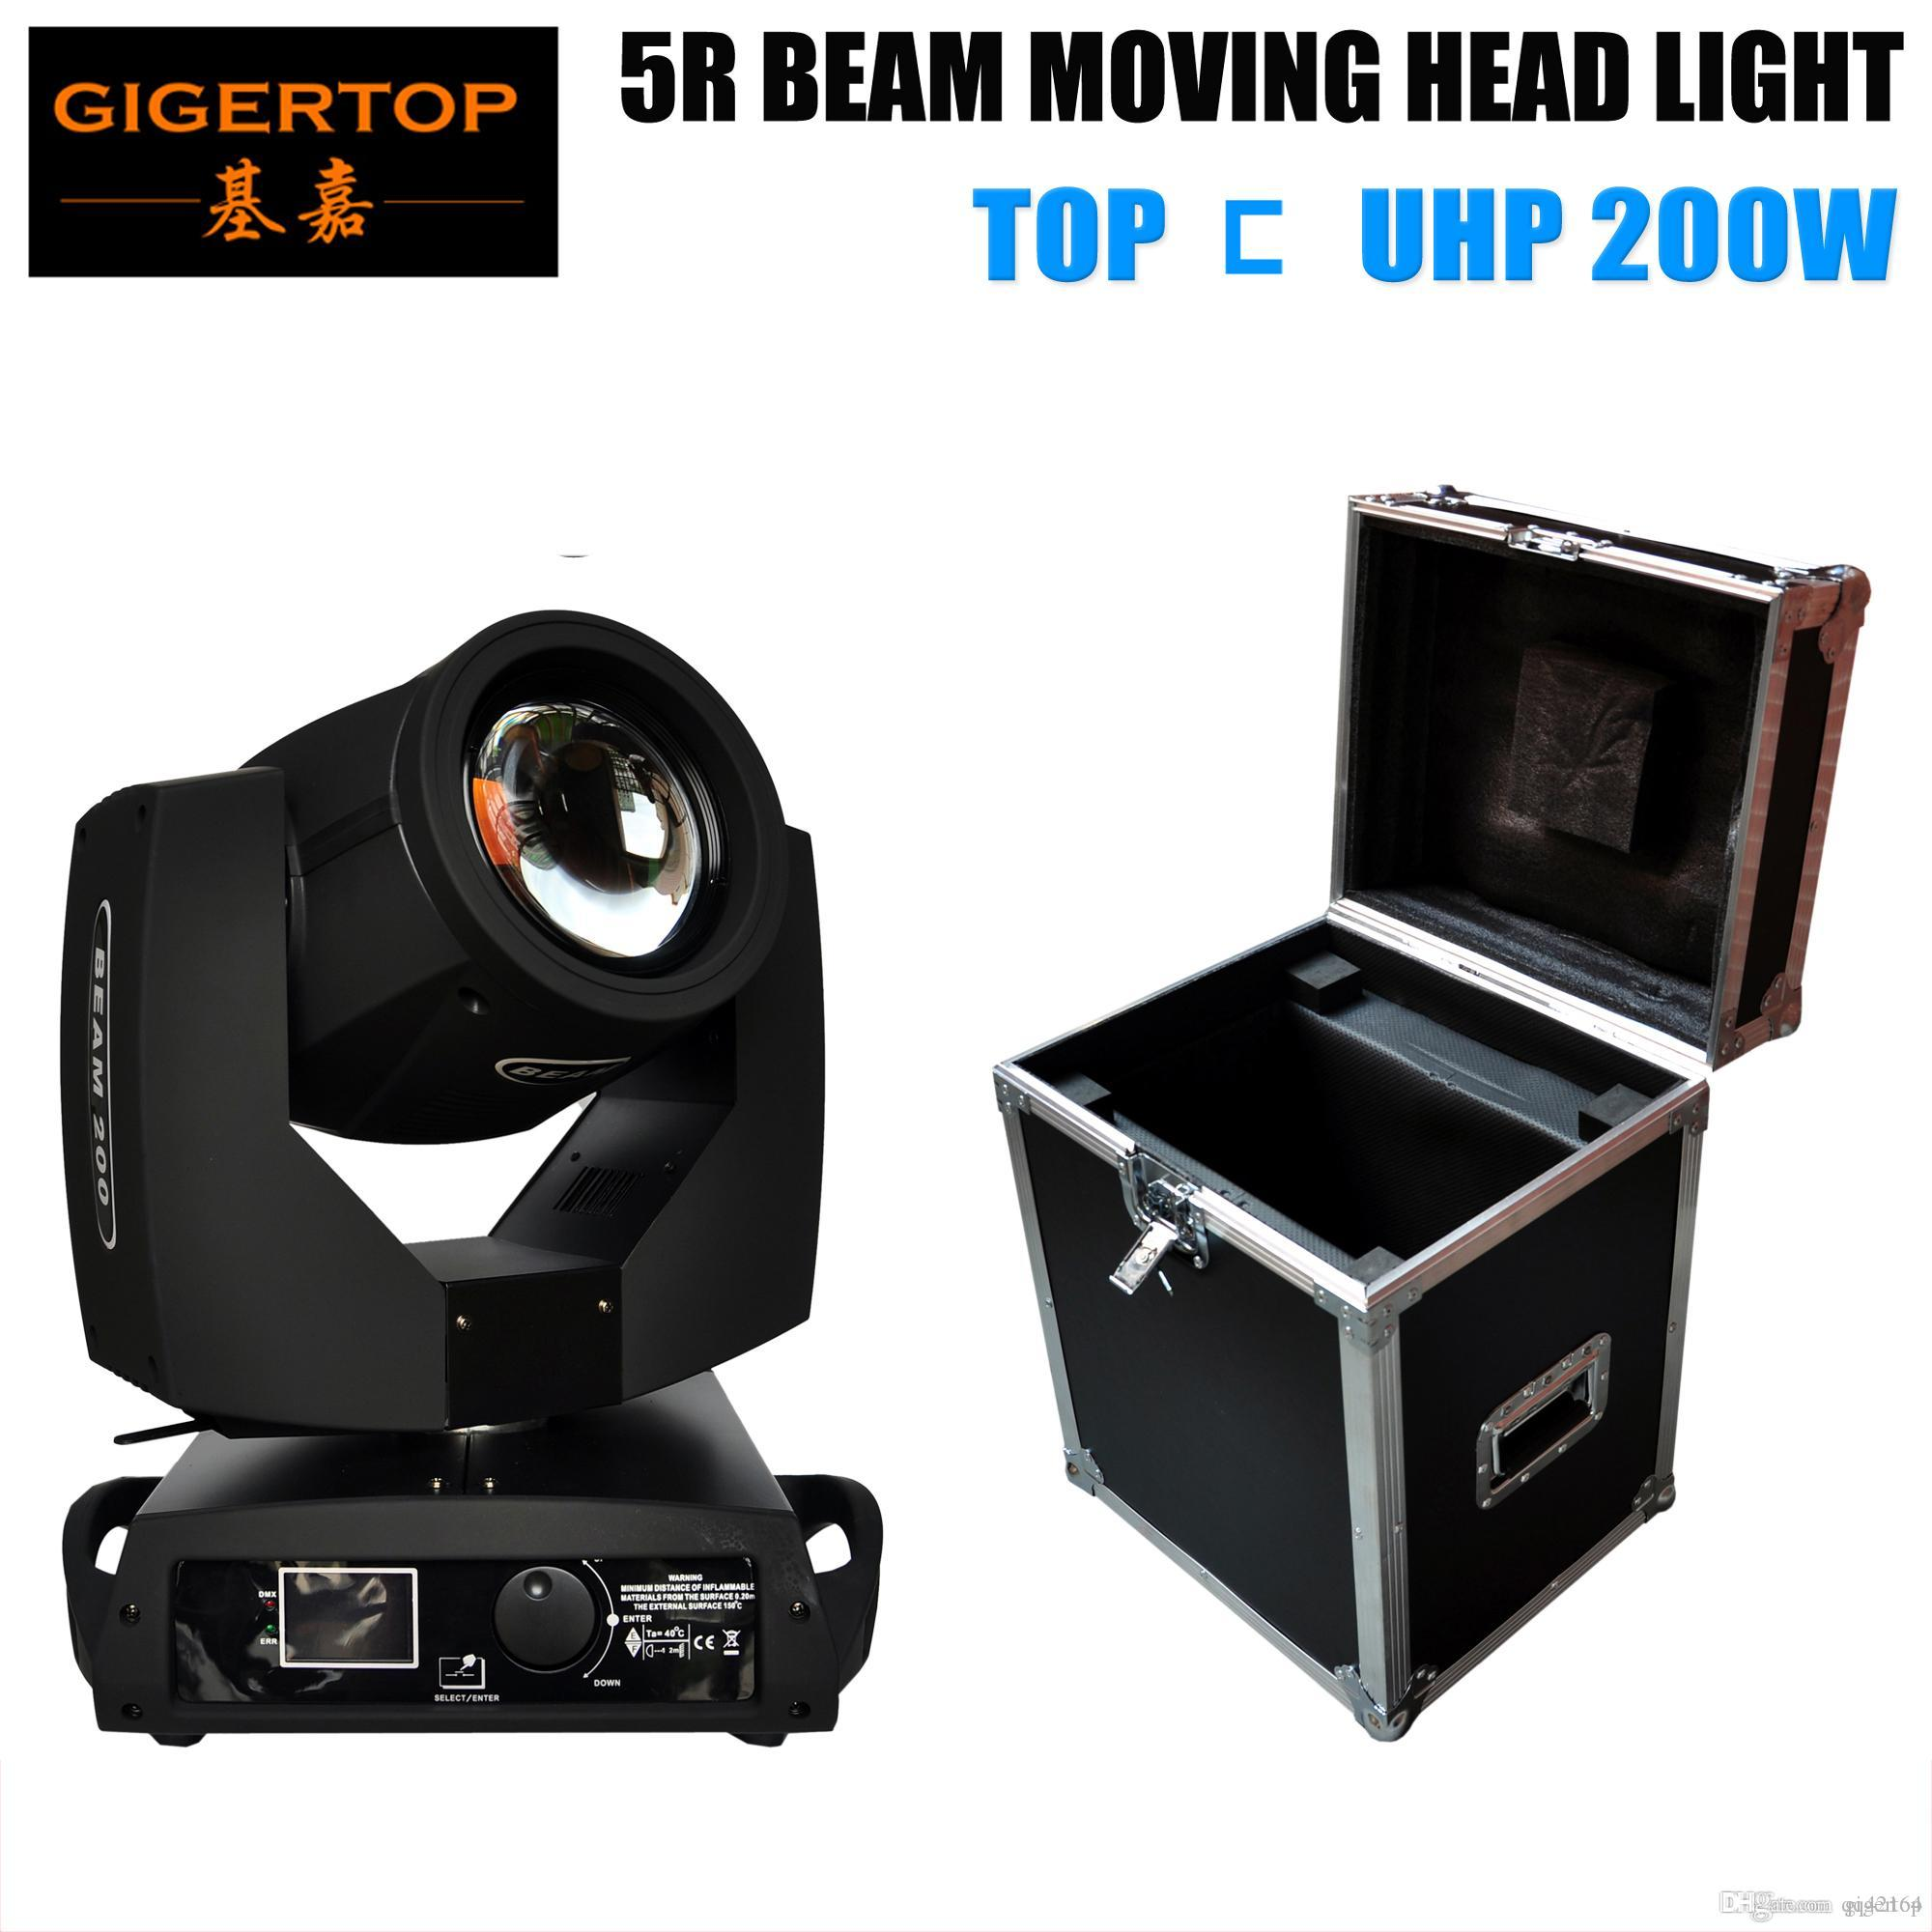 GIGERTOP Flight Case Verpackung 1 in 1 Beruf Moving Head Sharpy 5R 200W Sharpy Strahl Disco-Licht-16 Prism Rotation Phase Motor